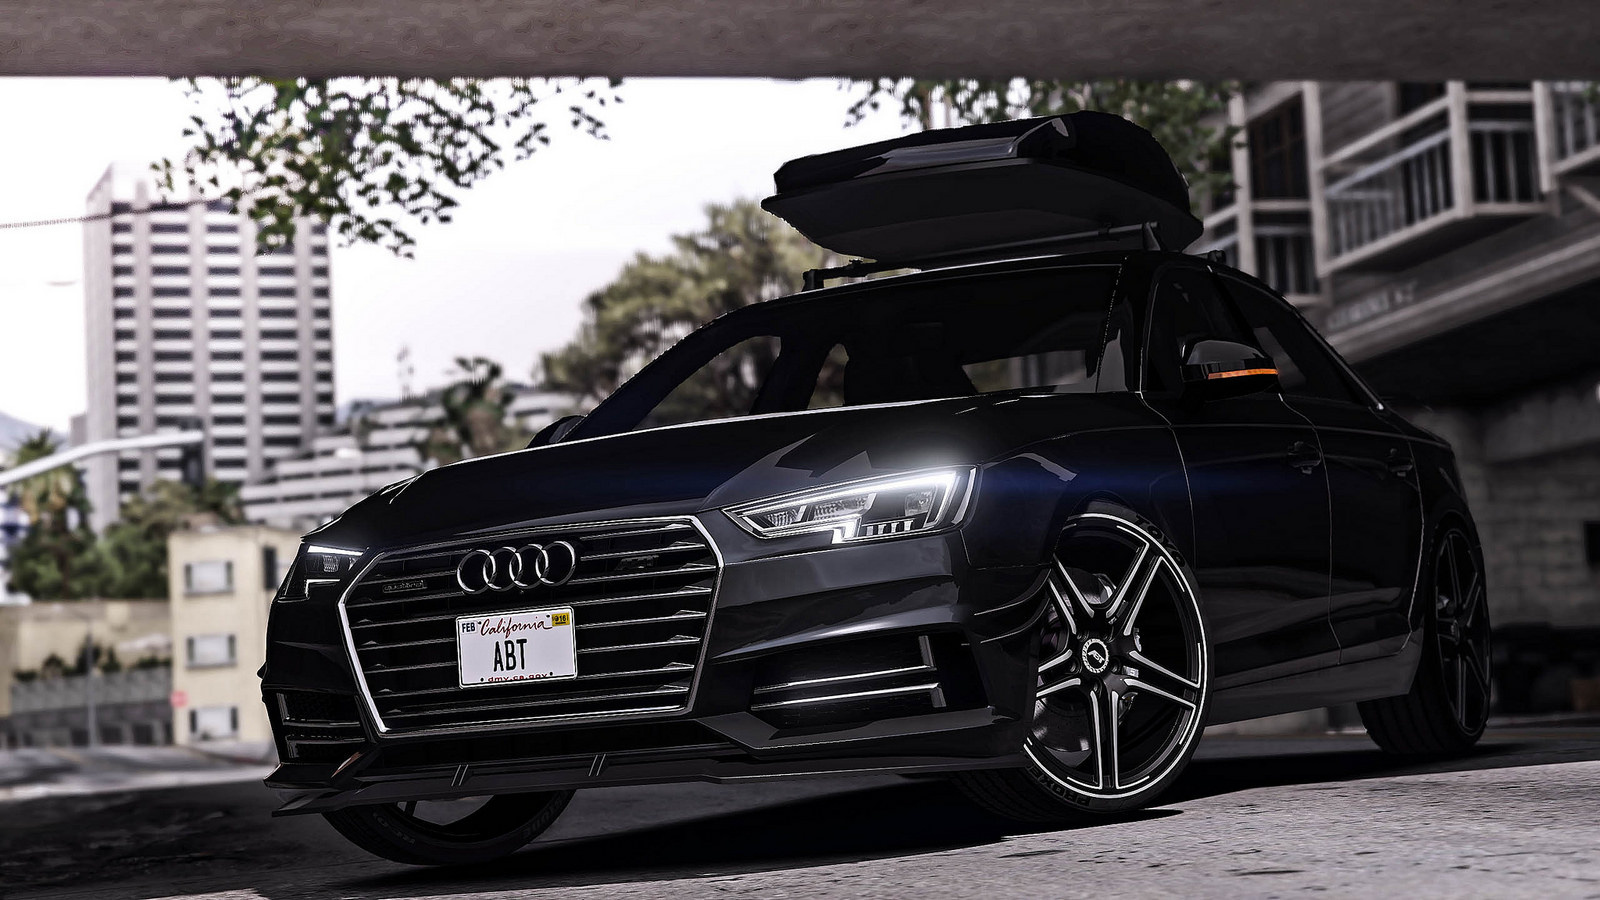 2017 Audi A4 Quattro Abt Add On Replace Tuning Gta5 Mods Com